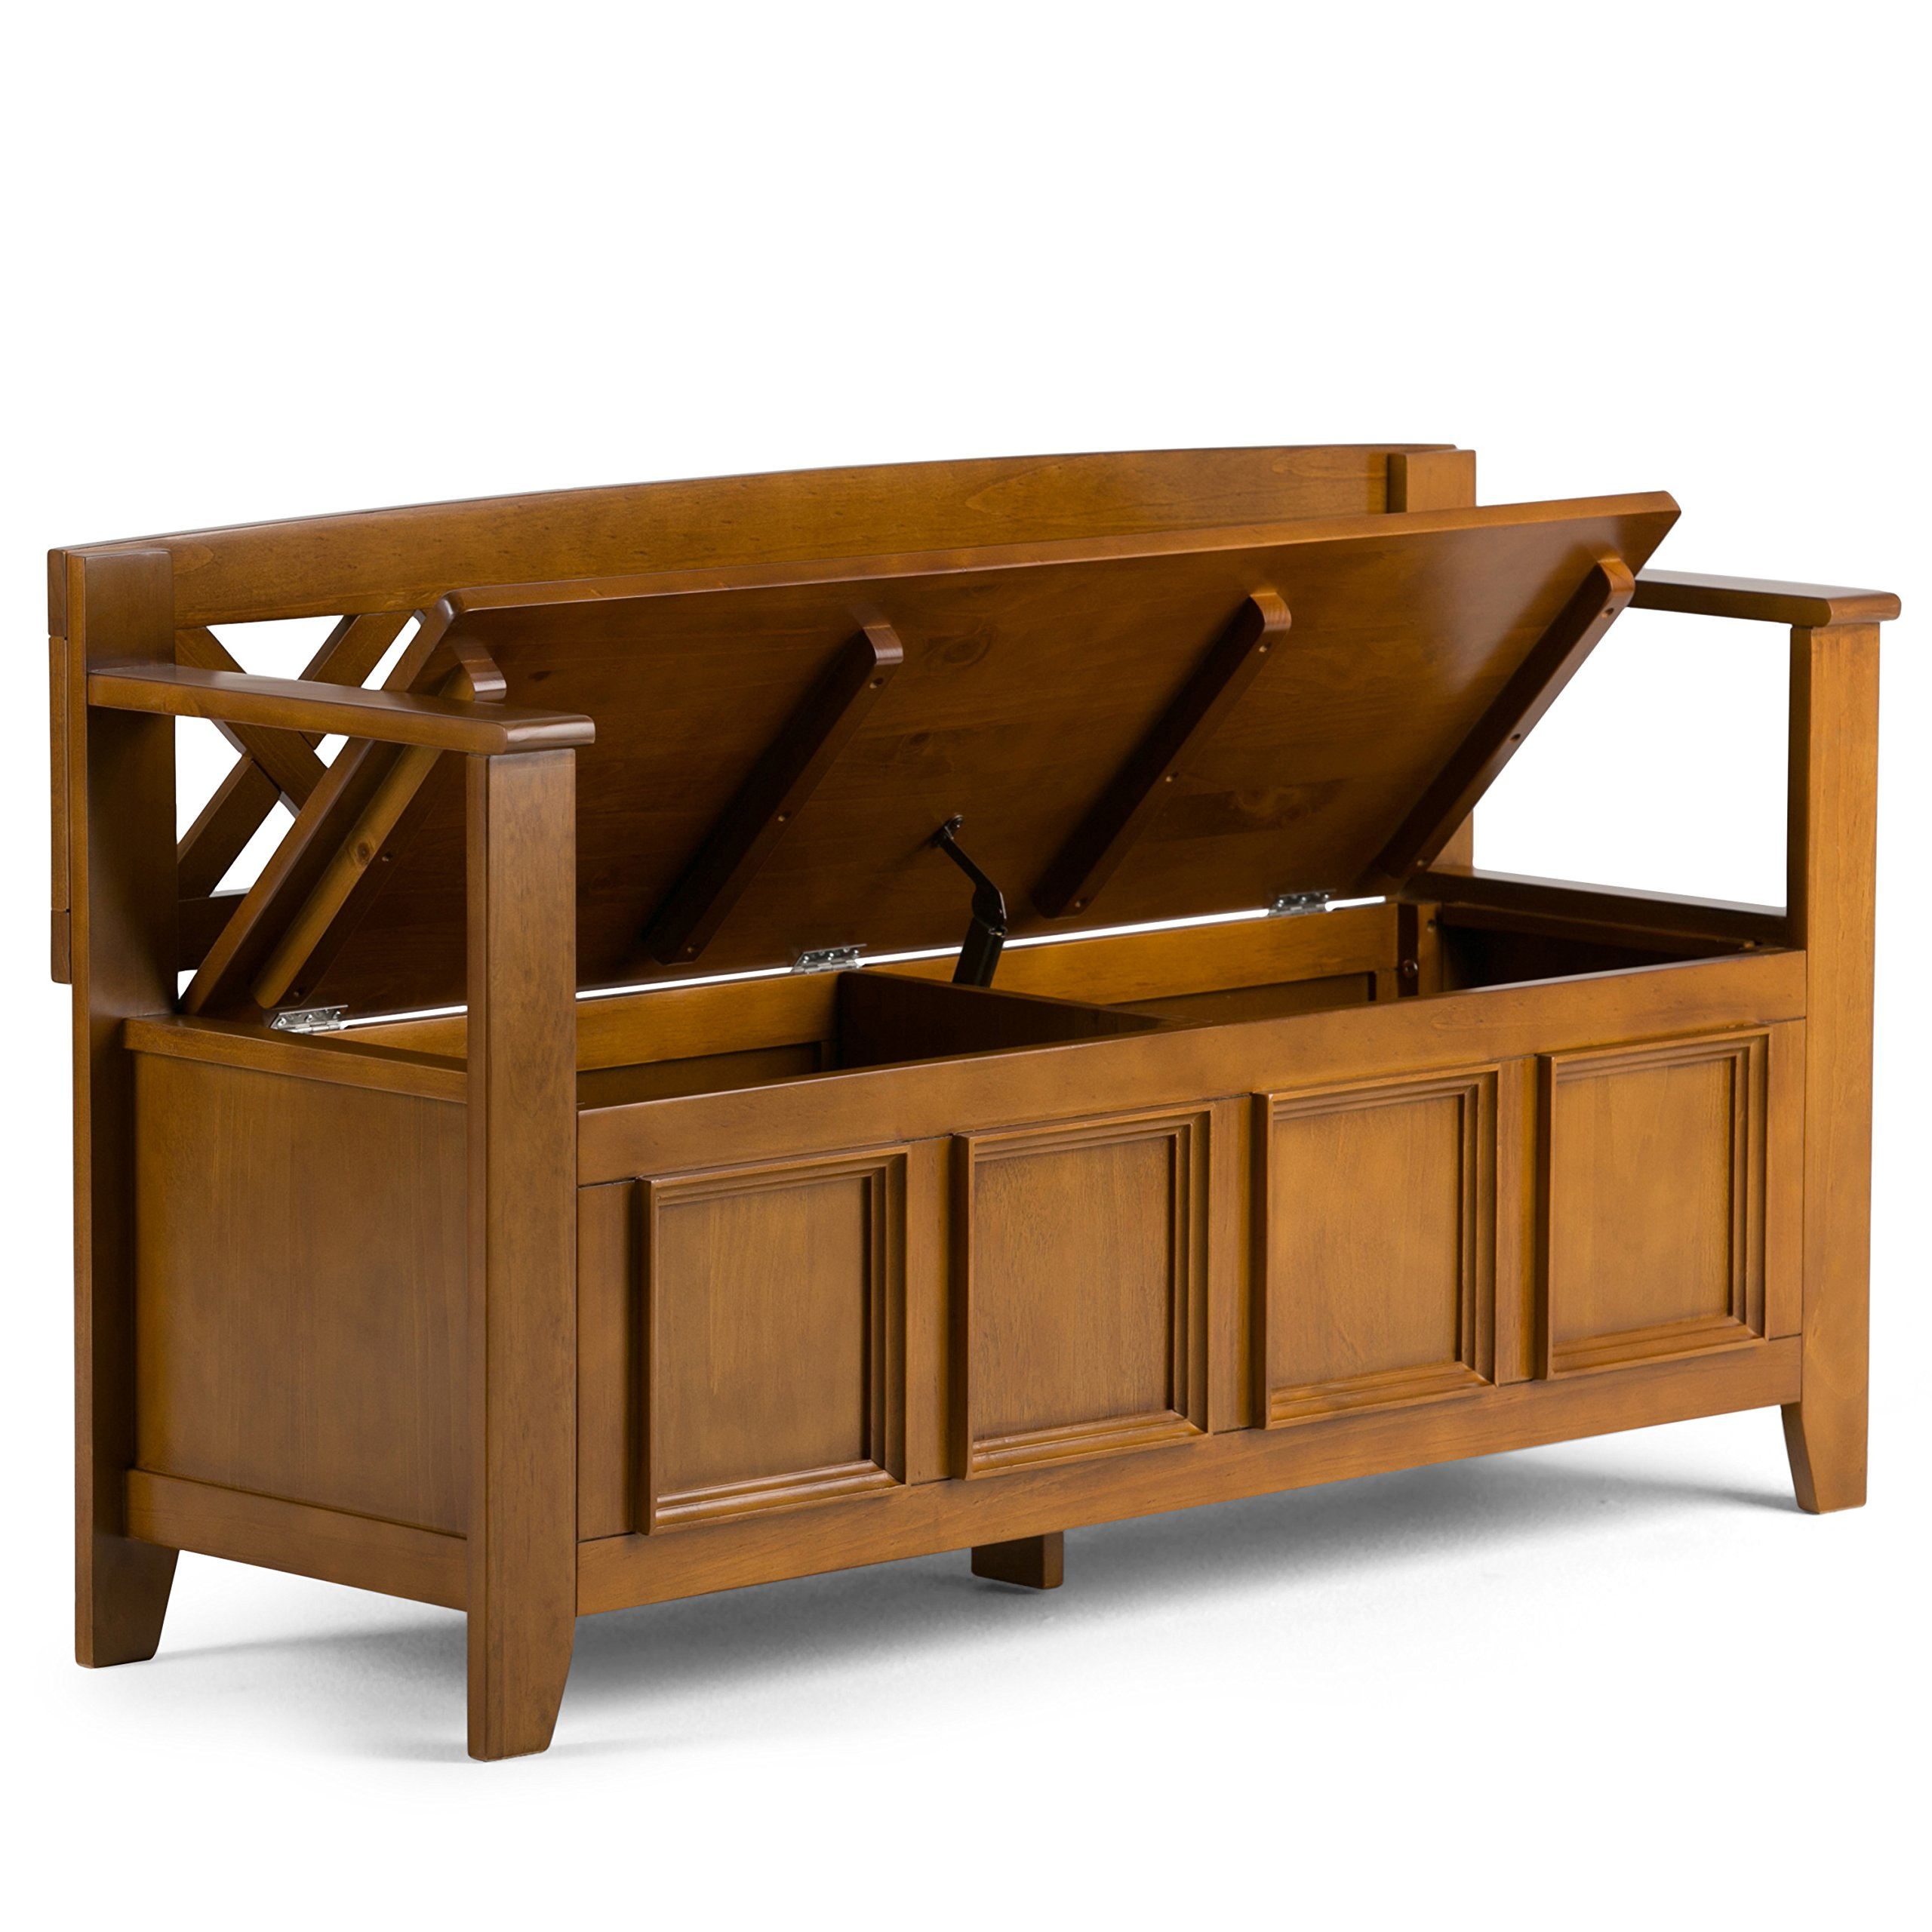 Simpli Home Amherst Solid Wood Entryway Storage Bench, Light Avalon Solid Wood Brown by Simpli Home (Image #3)